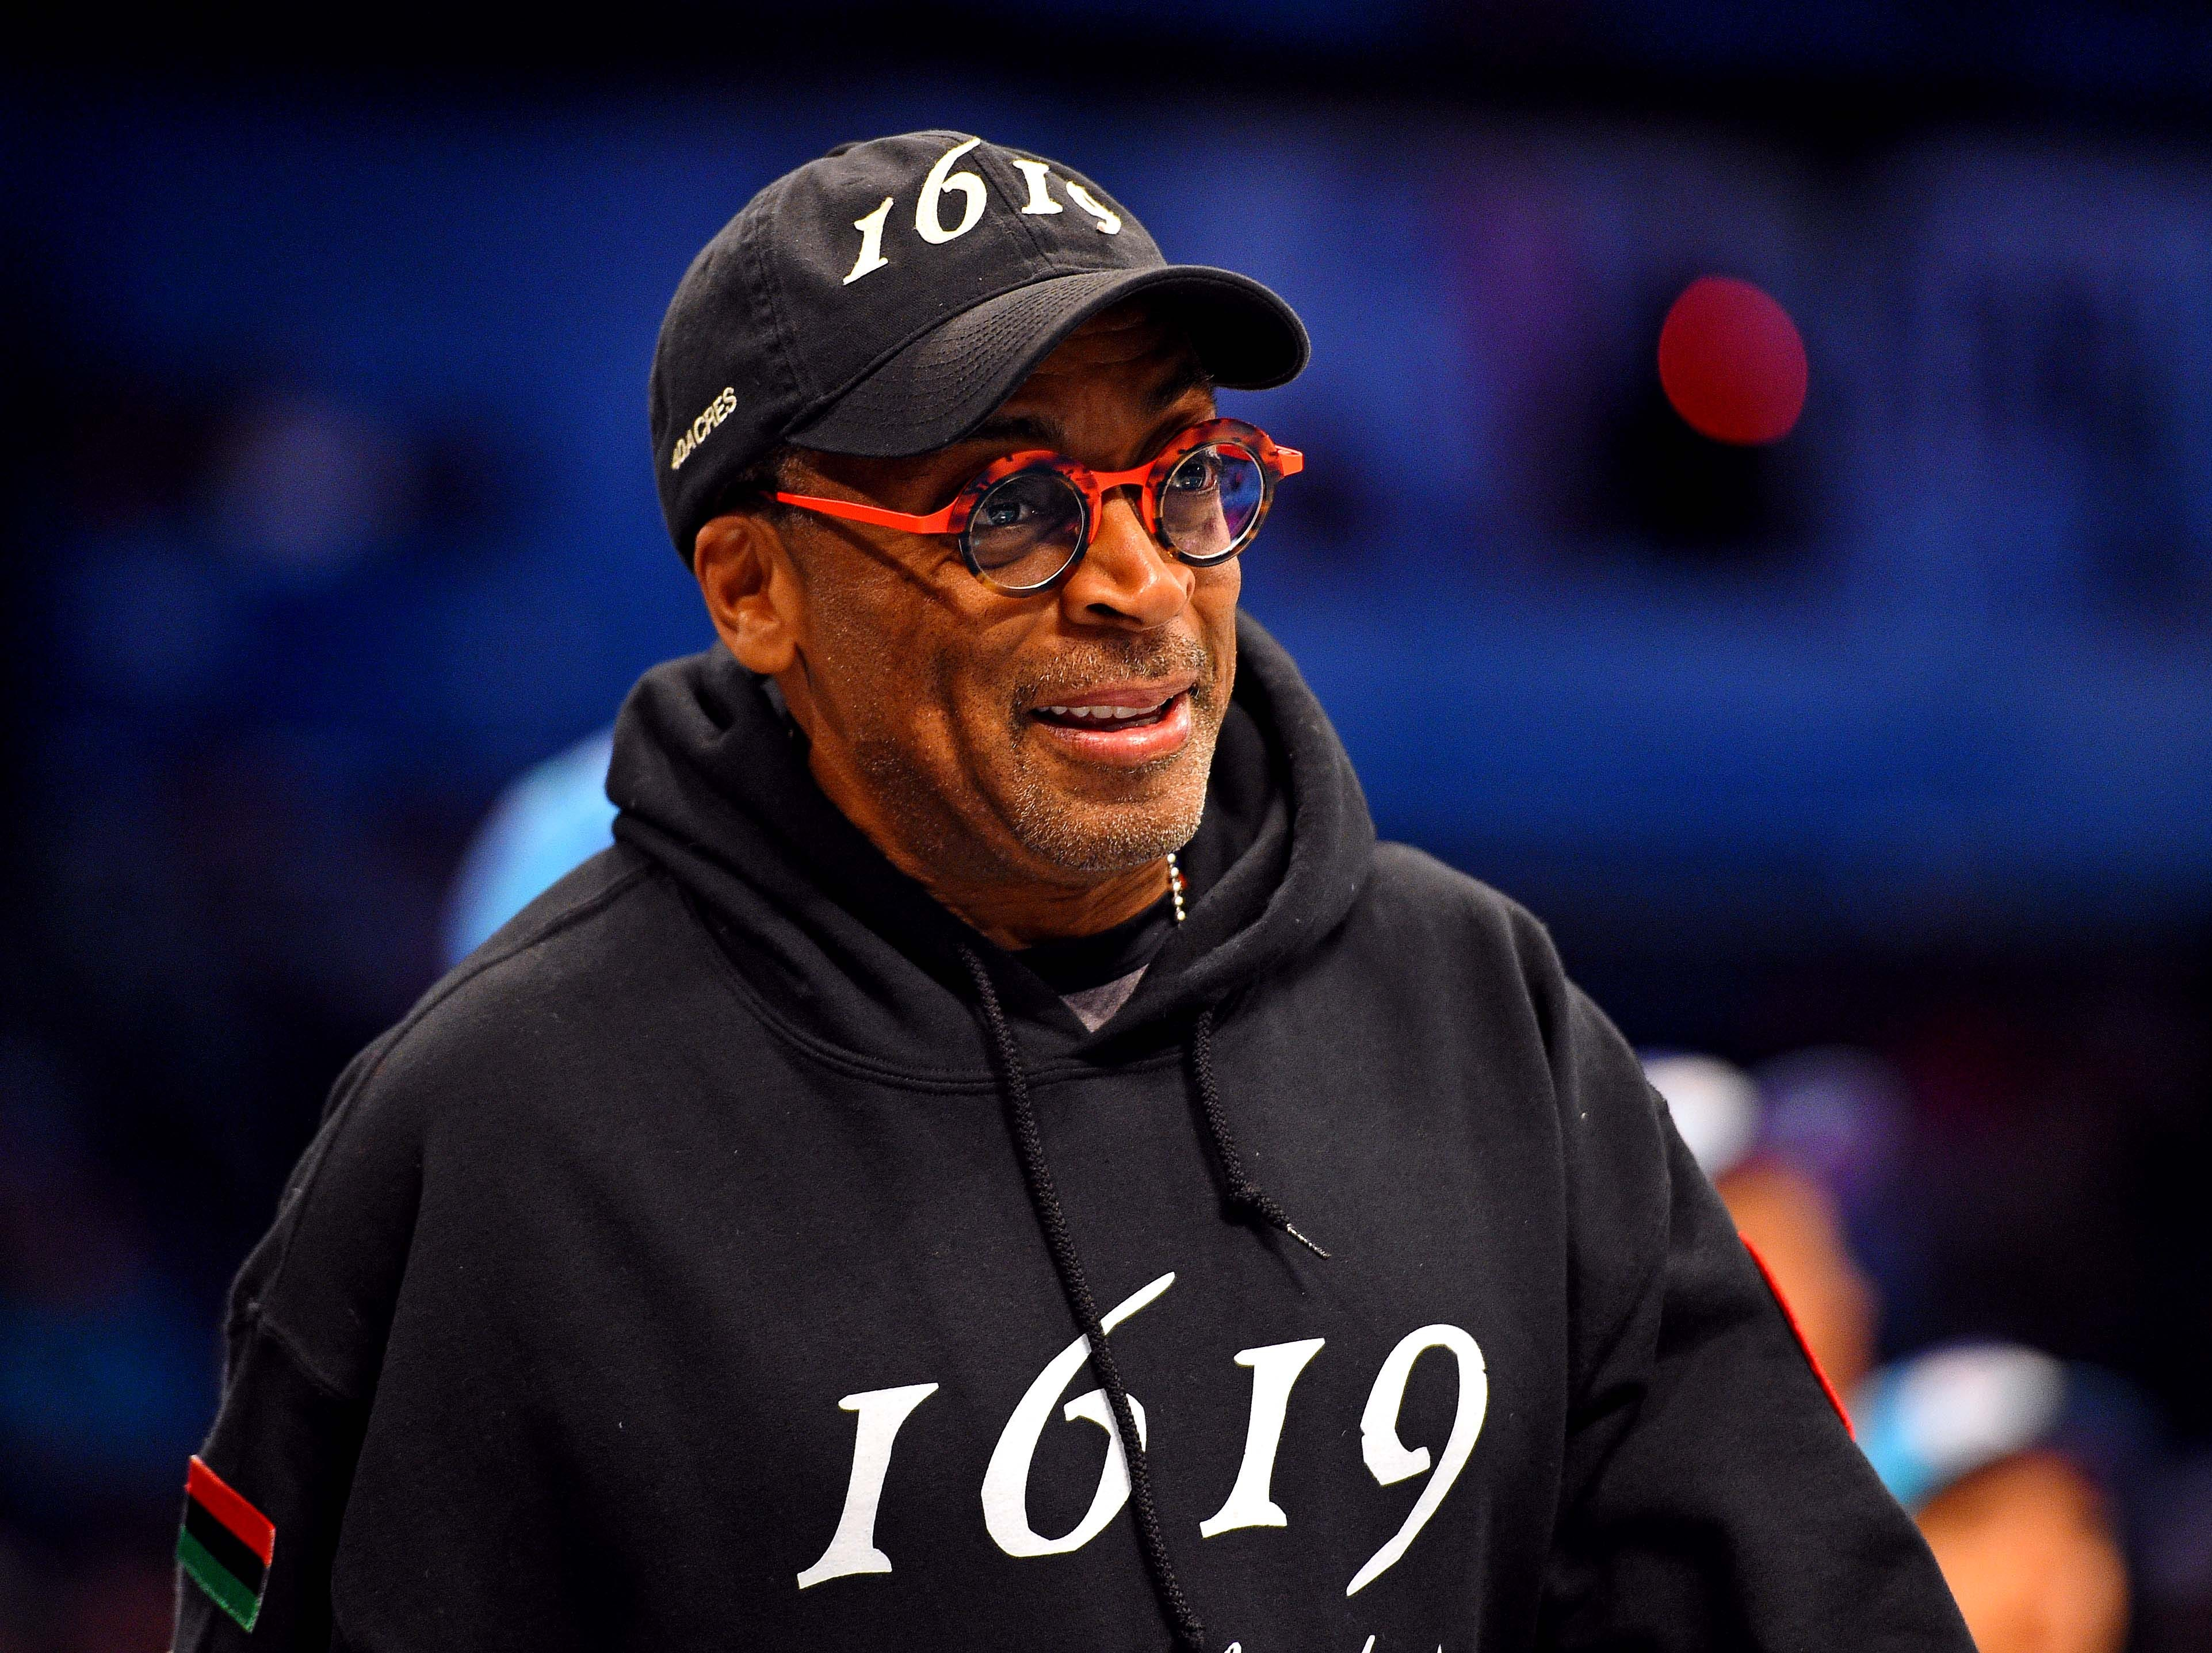 Spike Lee before the All-Star Rising Stars game.